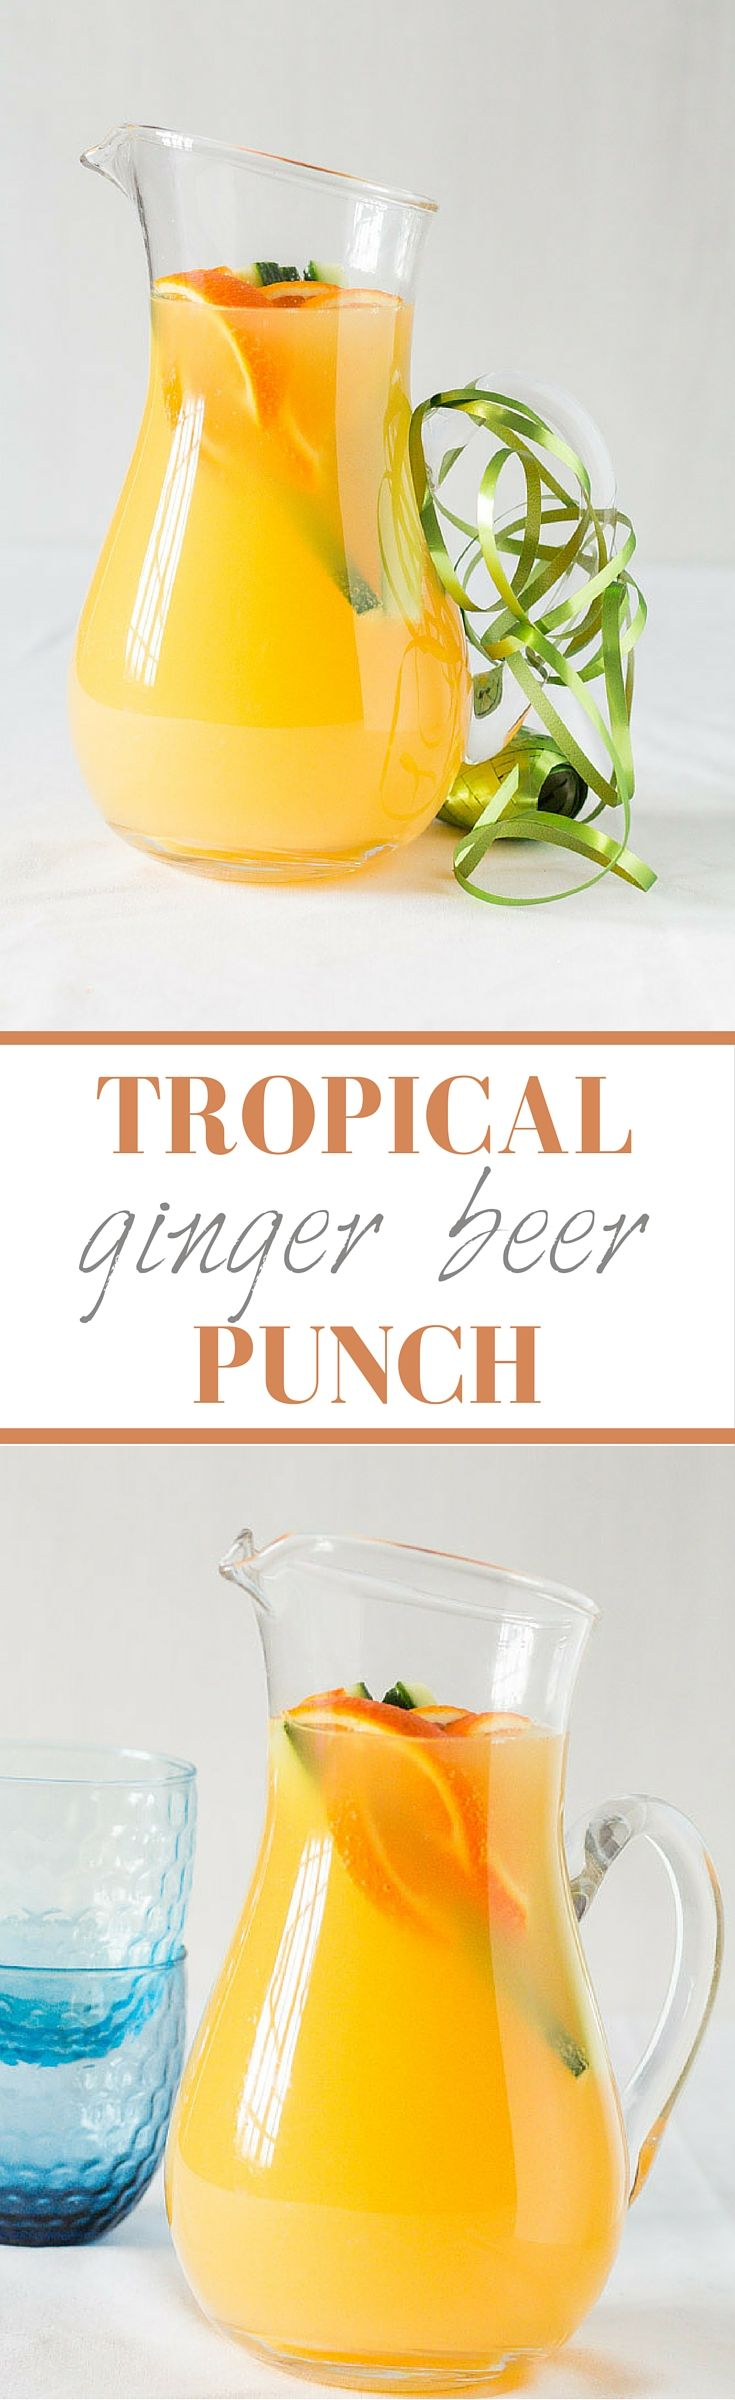 A festive and easy Tropical Ginger Beer Punch Recipe | Recipes From A Pantry